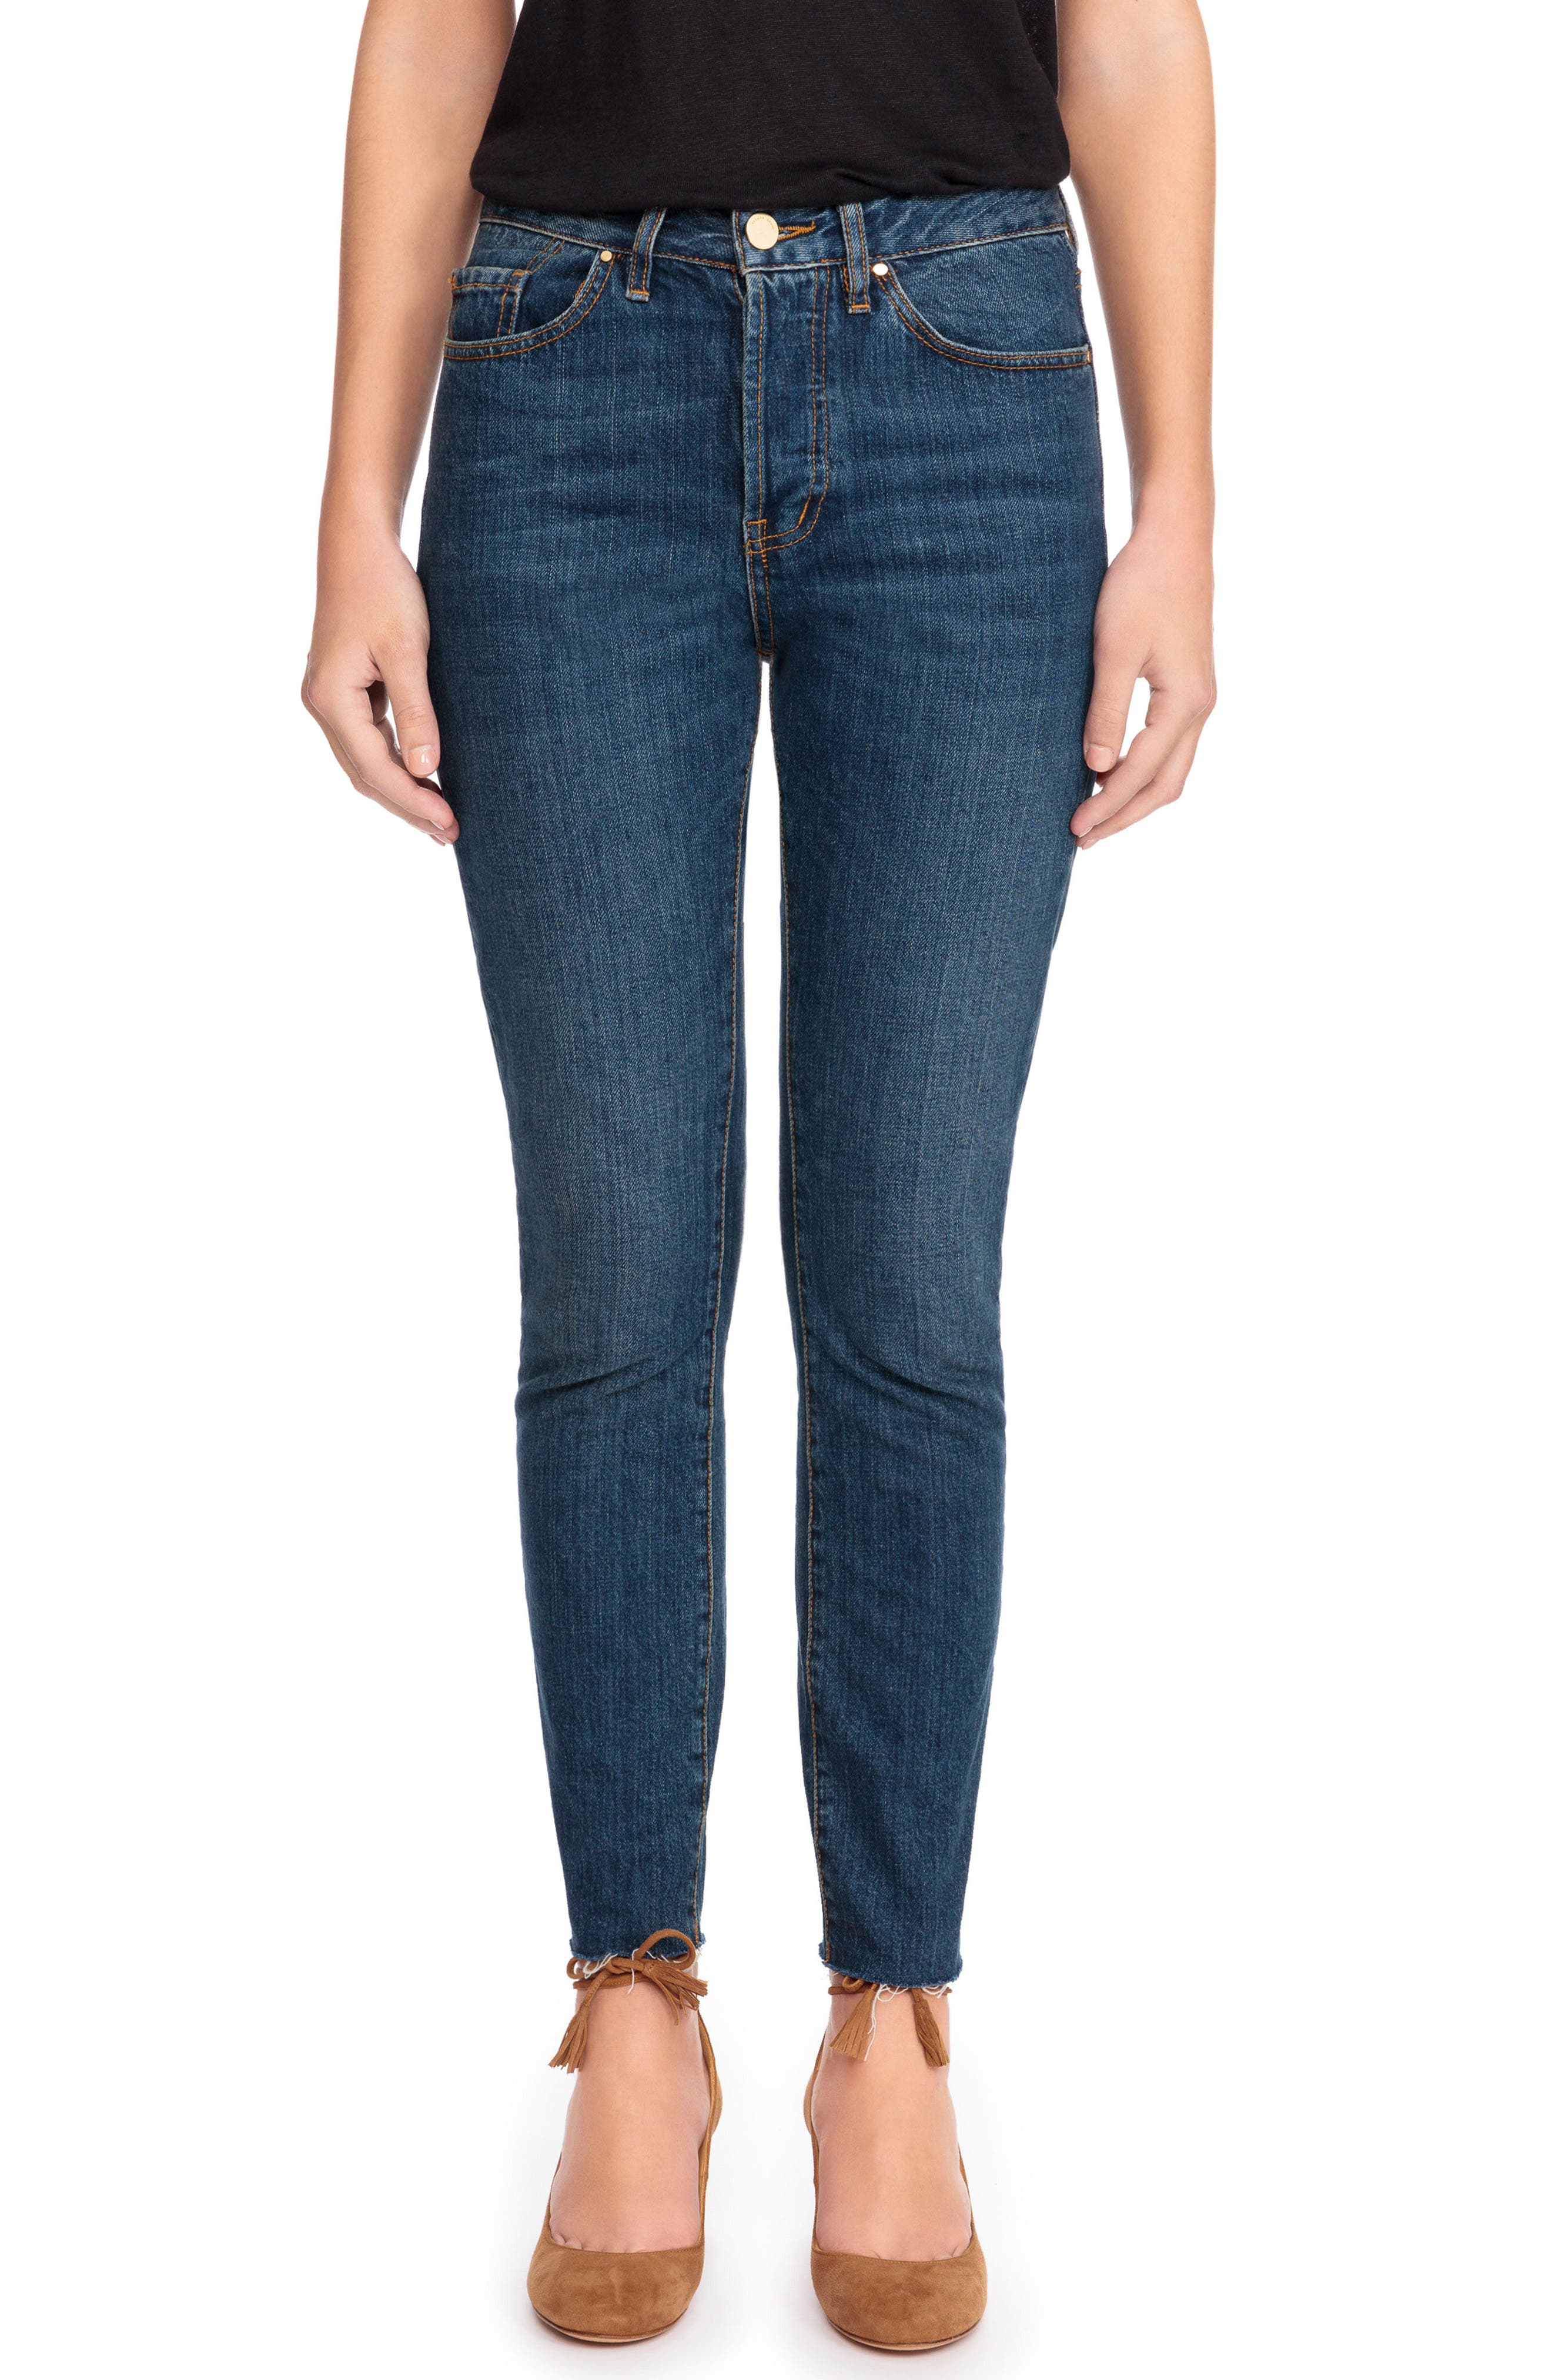 Sézane 1967 - The Brut Sexy Raw Hem High Waist Skinny Jeans